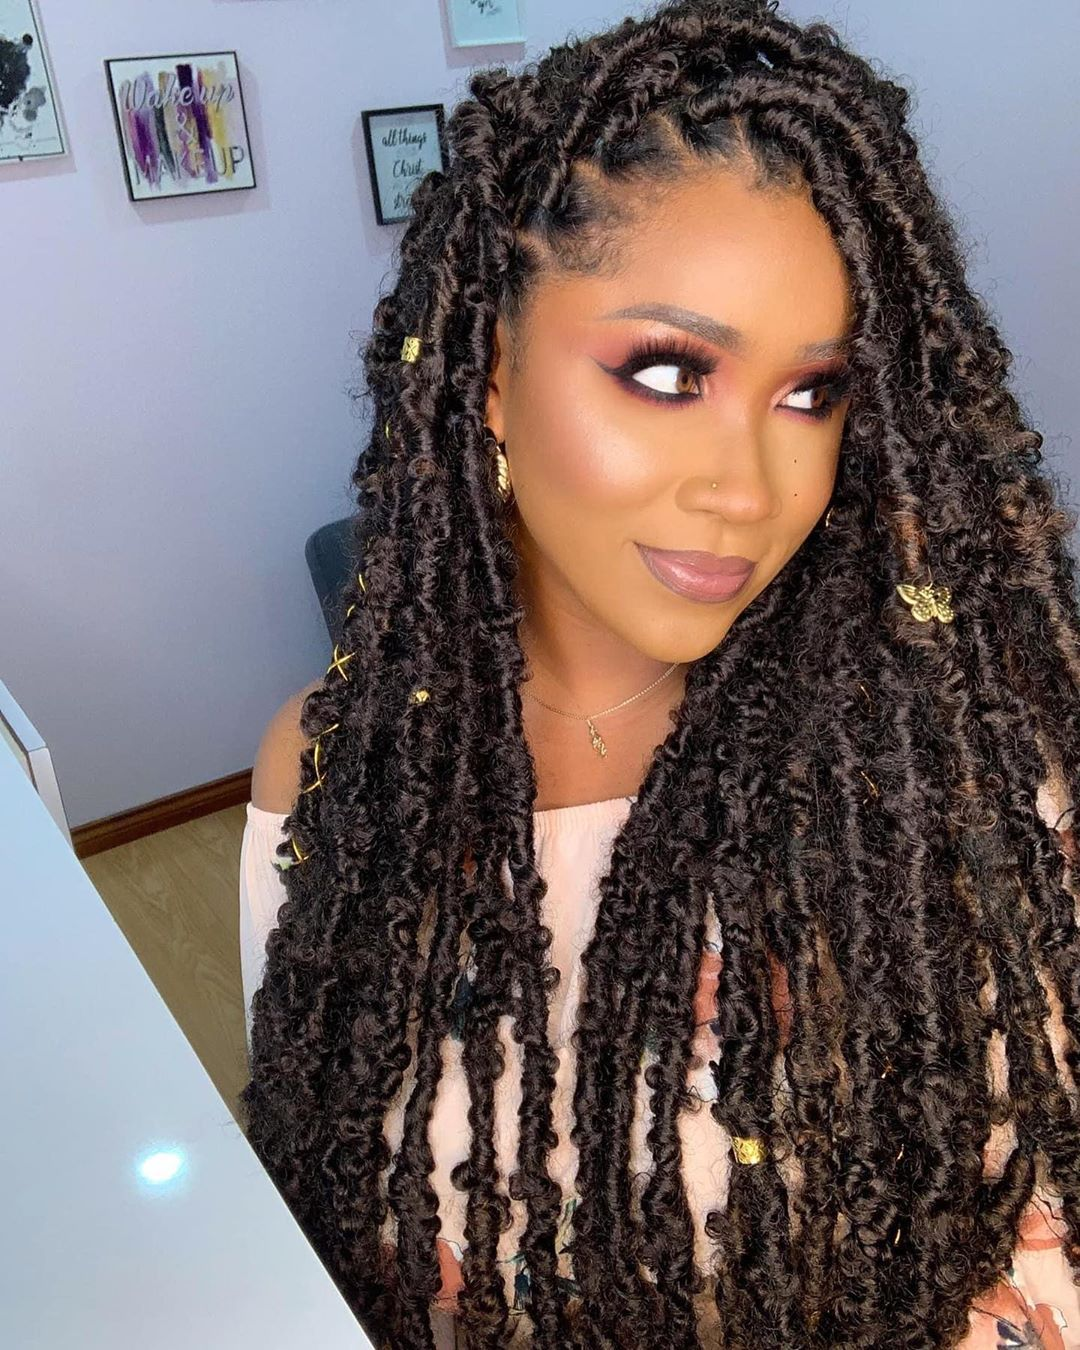 Loc D By Jordz On Instagram This Gorgeous Doll Rocking Her Kailani Locs Makeup Makeups Faux Locs Hairstyles Braided Hairstyles Natural Hair Braids